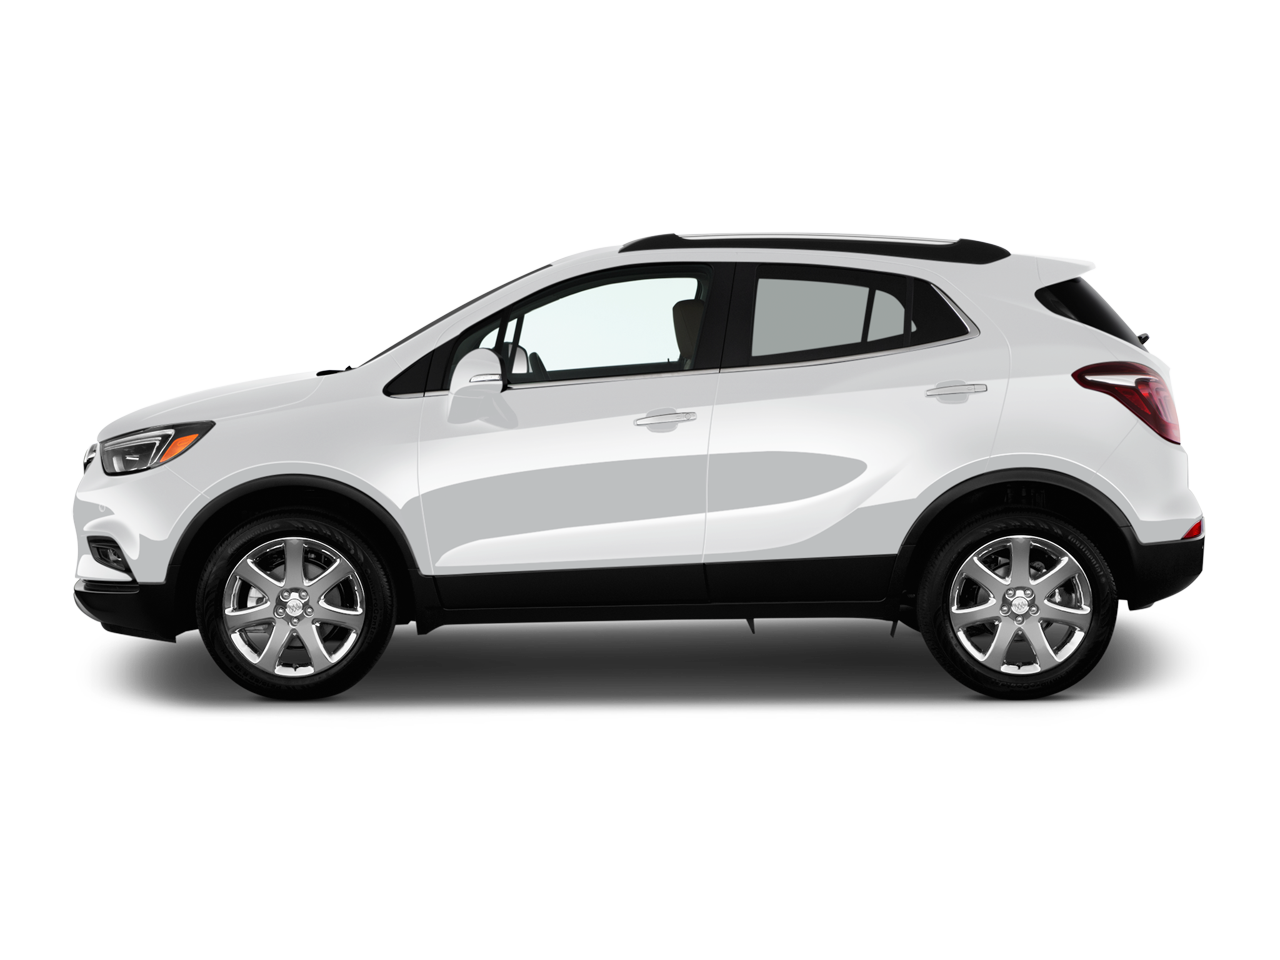 buick encore 2014 black. buick encore 2014 black